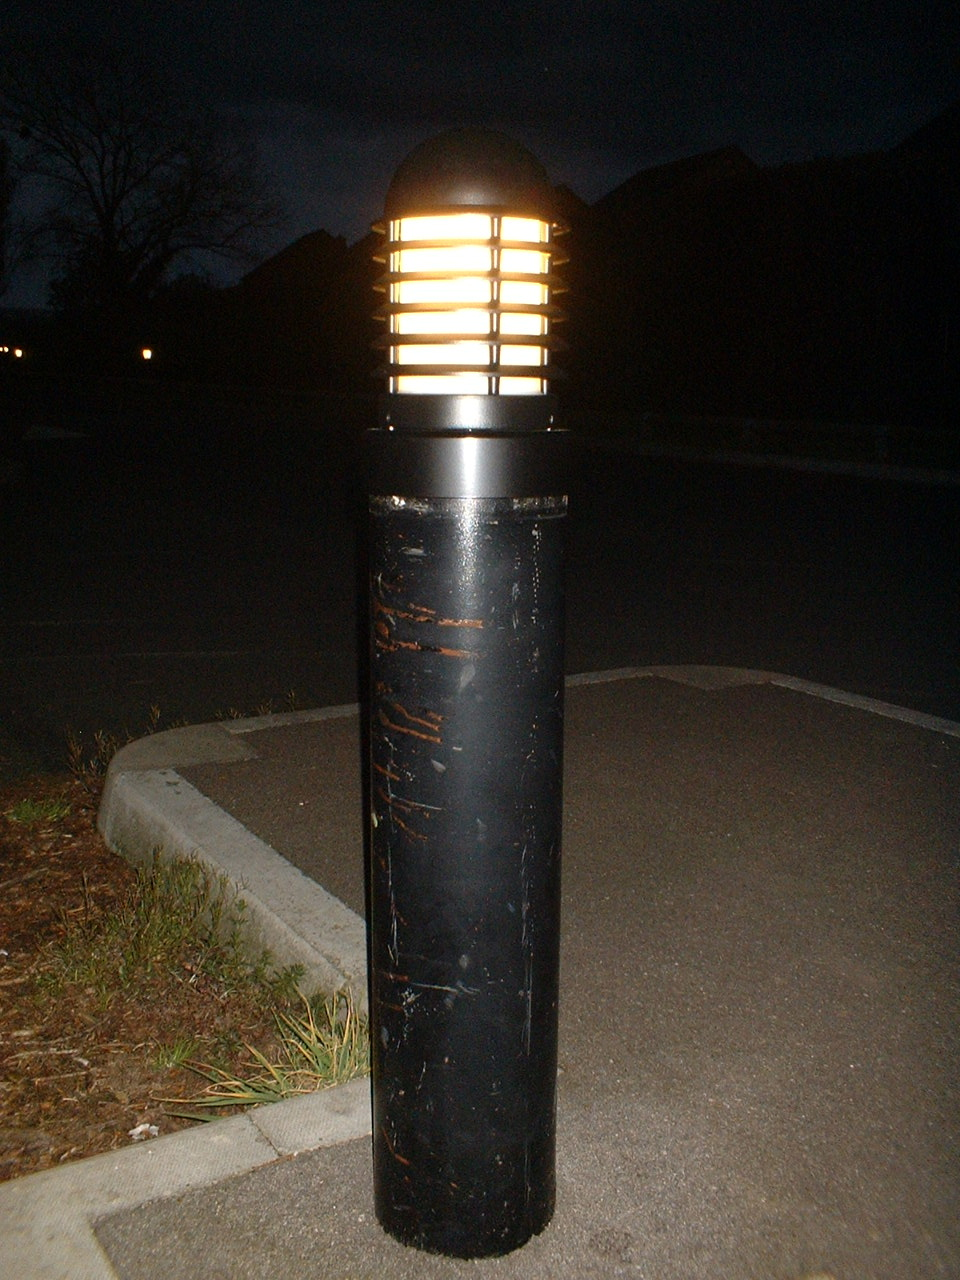 Indoor tennis club driveway lighting total lighting for How to install driveway lights